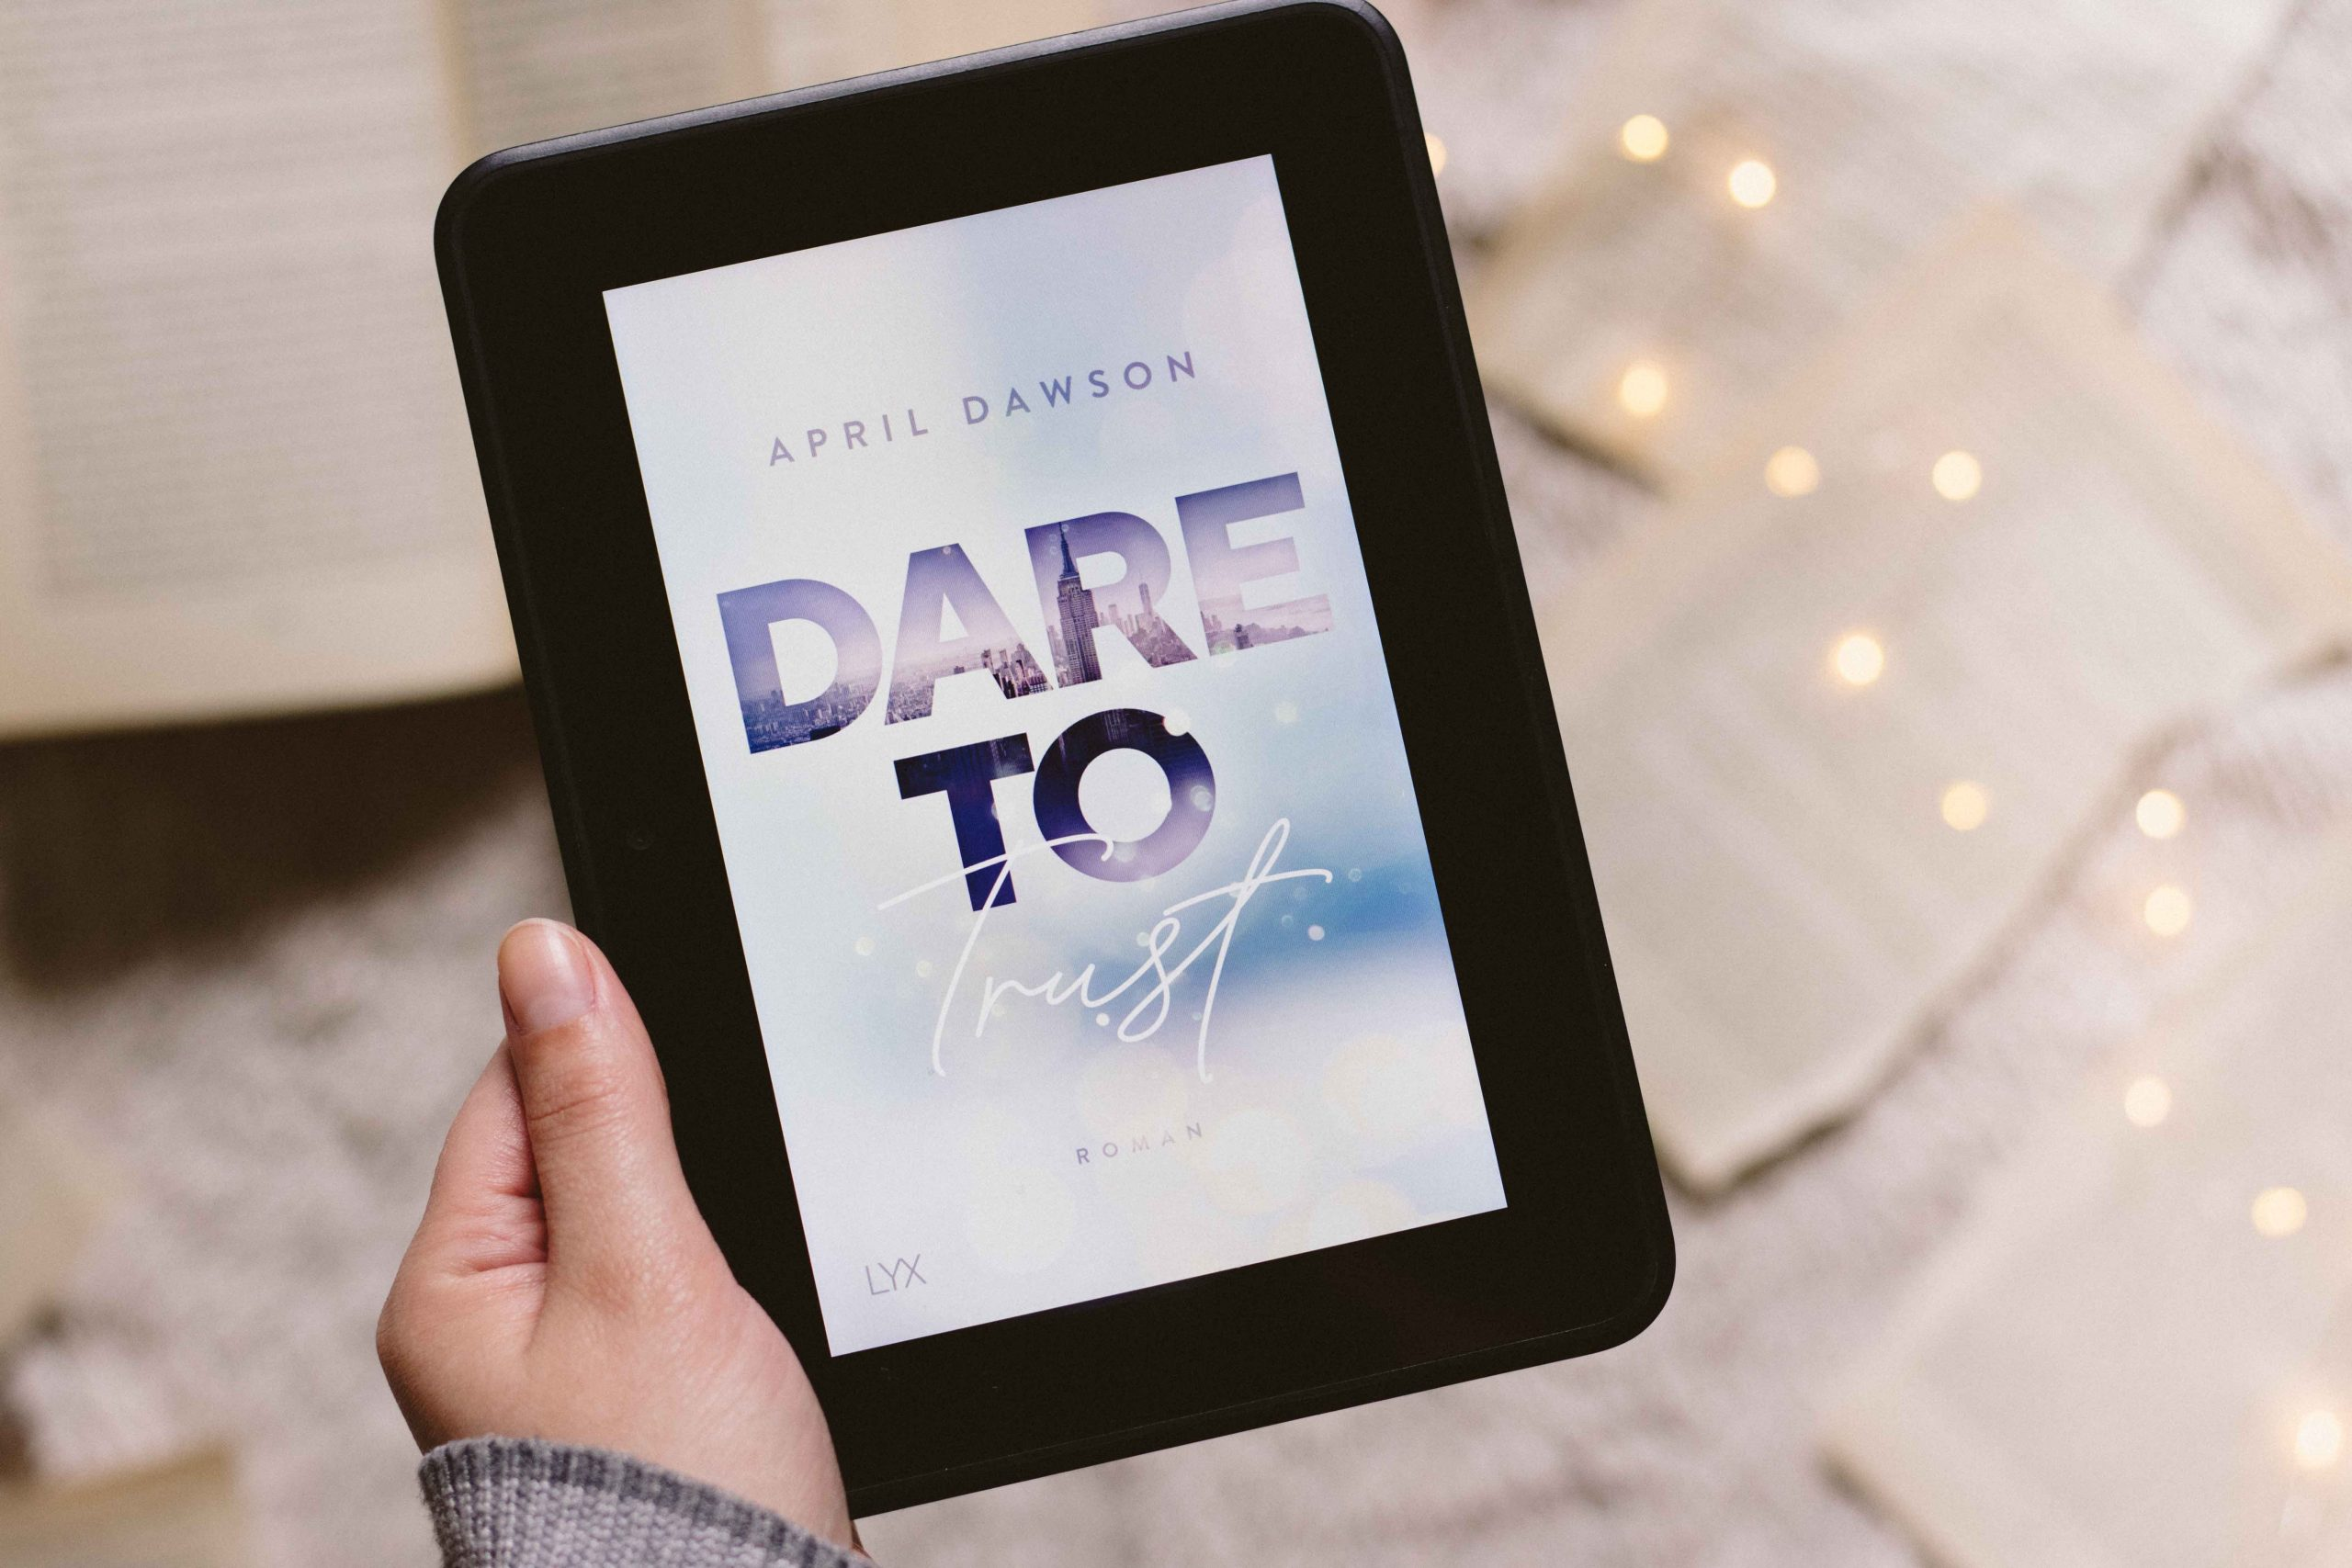 Dare to Trust – Dare to Love #1 | April Dawson